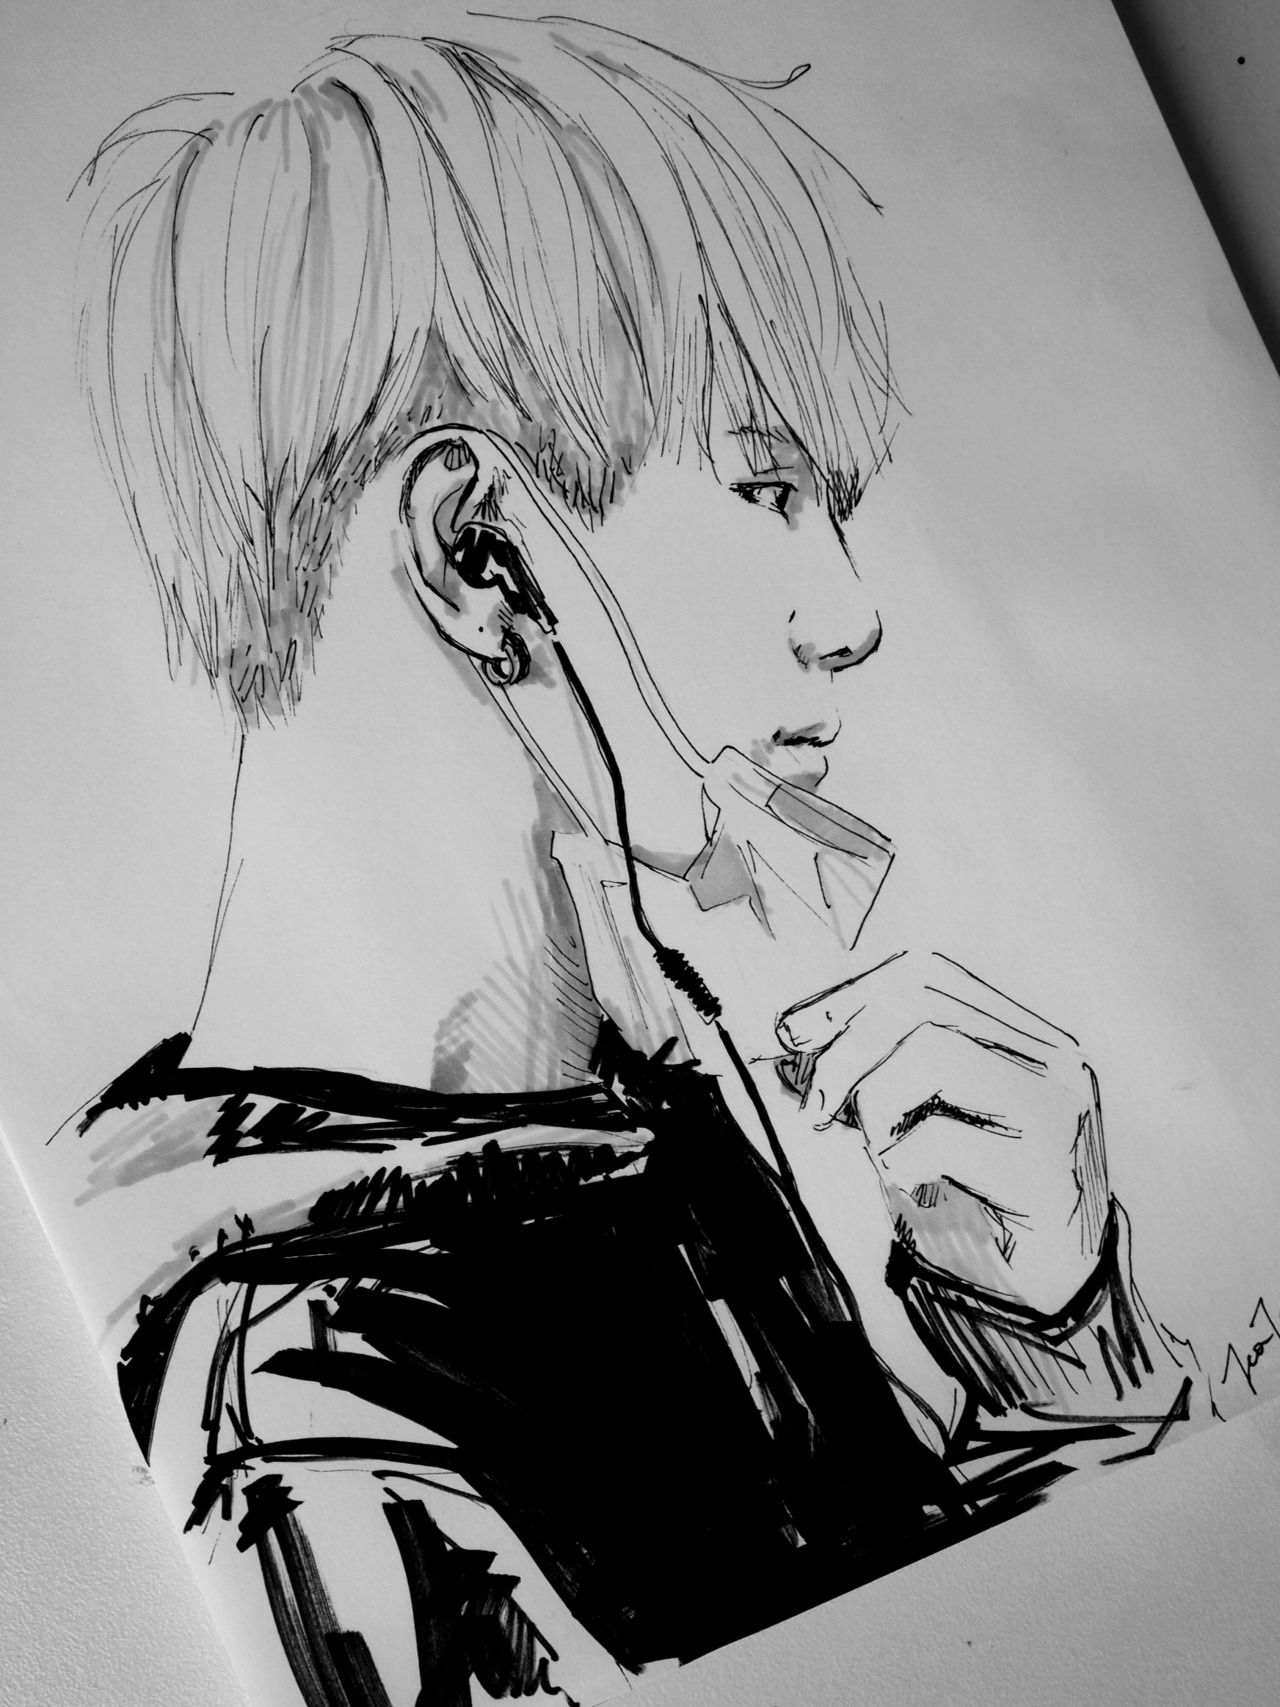 Suga fan art Bts drawings, Kpop drawings, Art